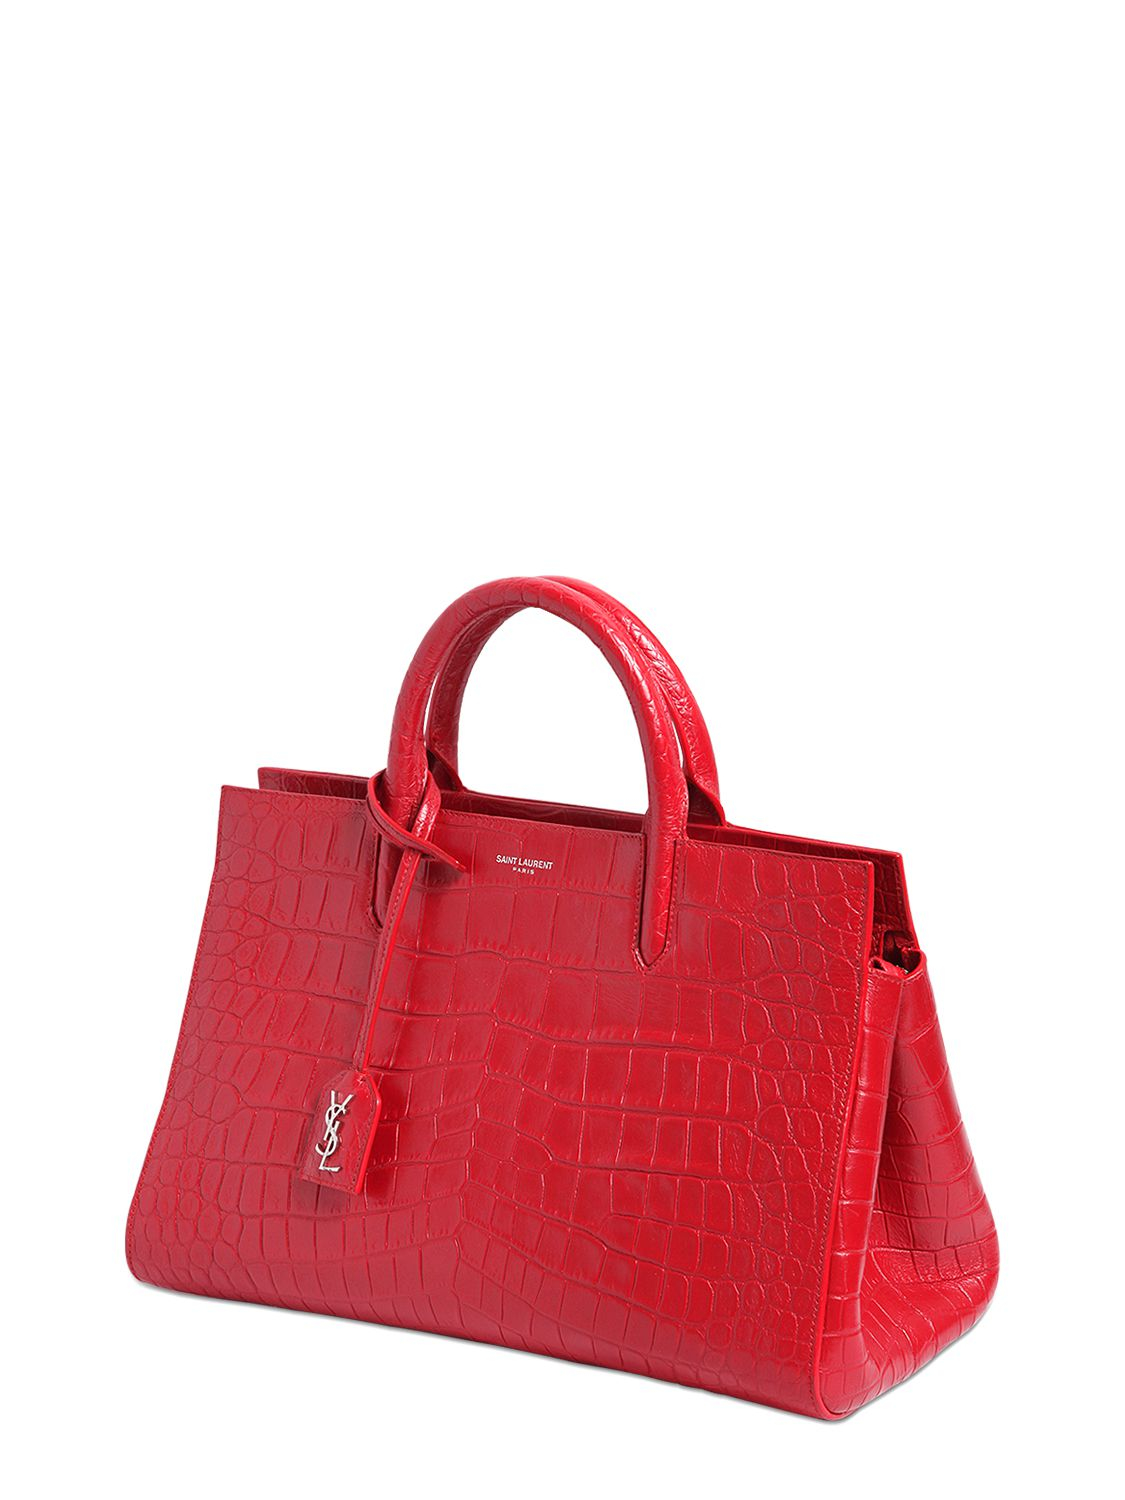 54dd47a6fa Lyst - Saint Laurent Small Rive Gauche Croc-Embossed Leather Tote Bag in Red